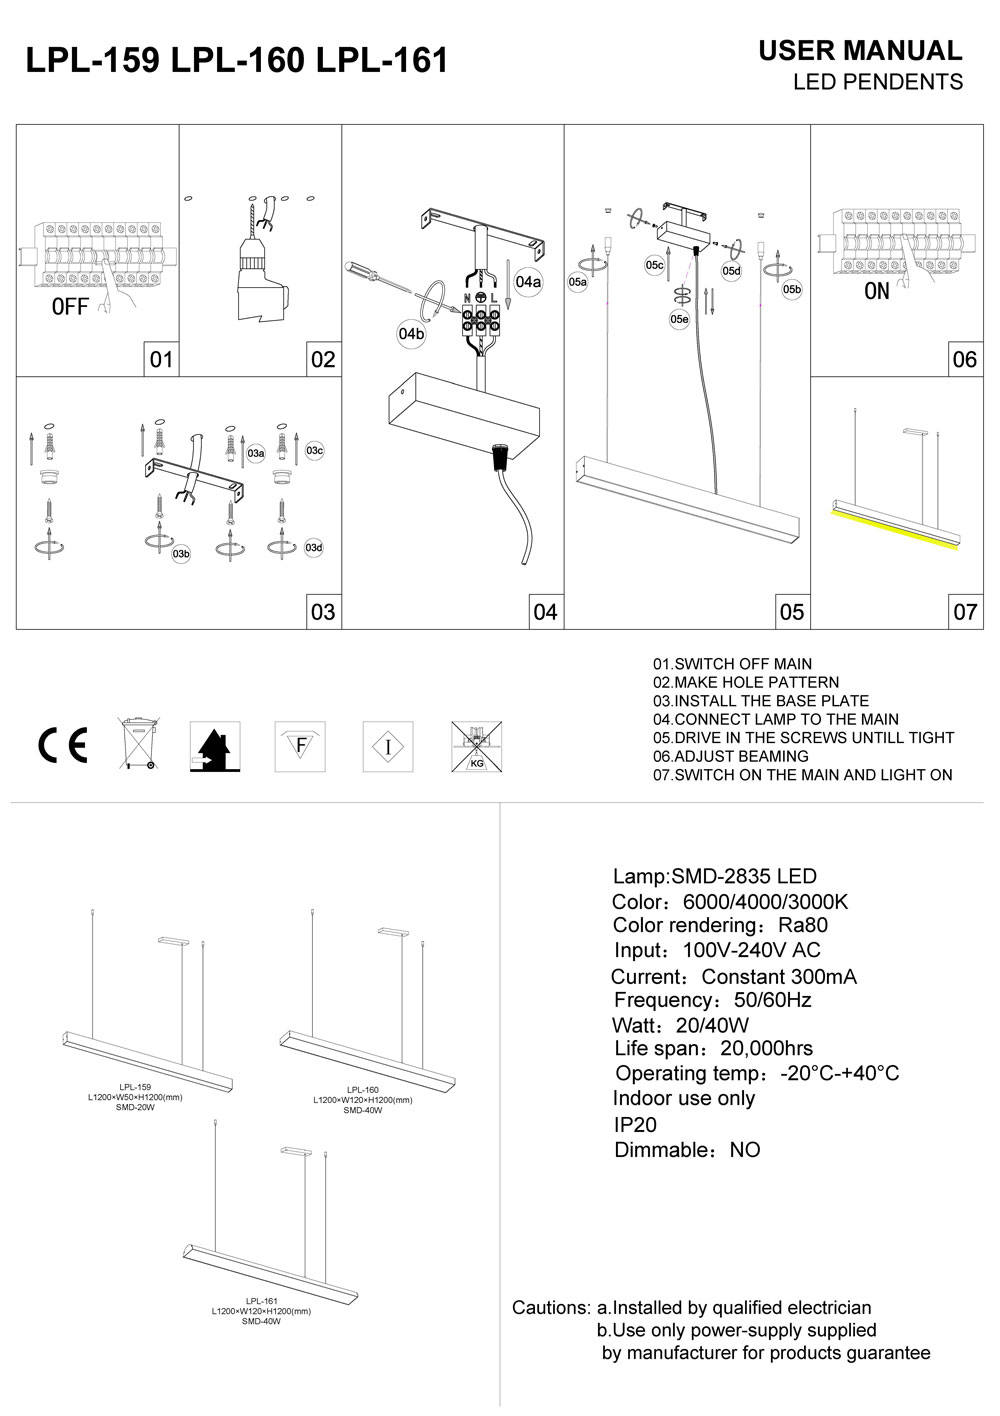 LPL-159-LPL-160-LPL-161 LED pendant light installation guide